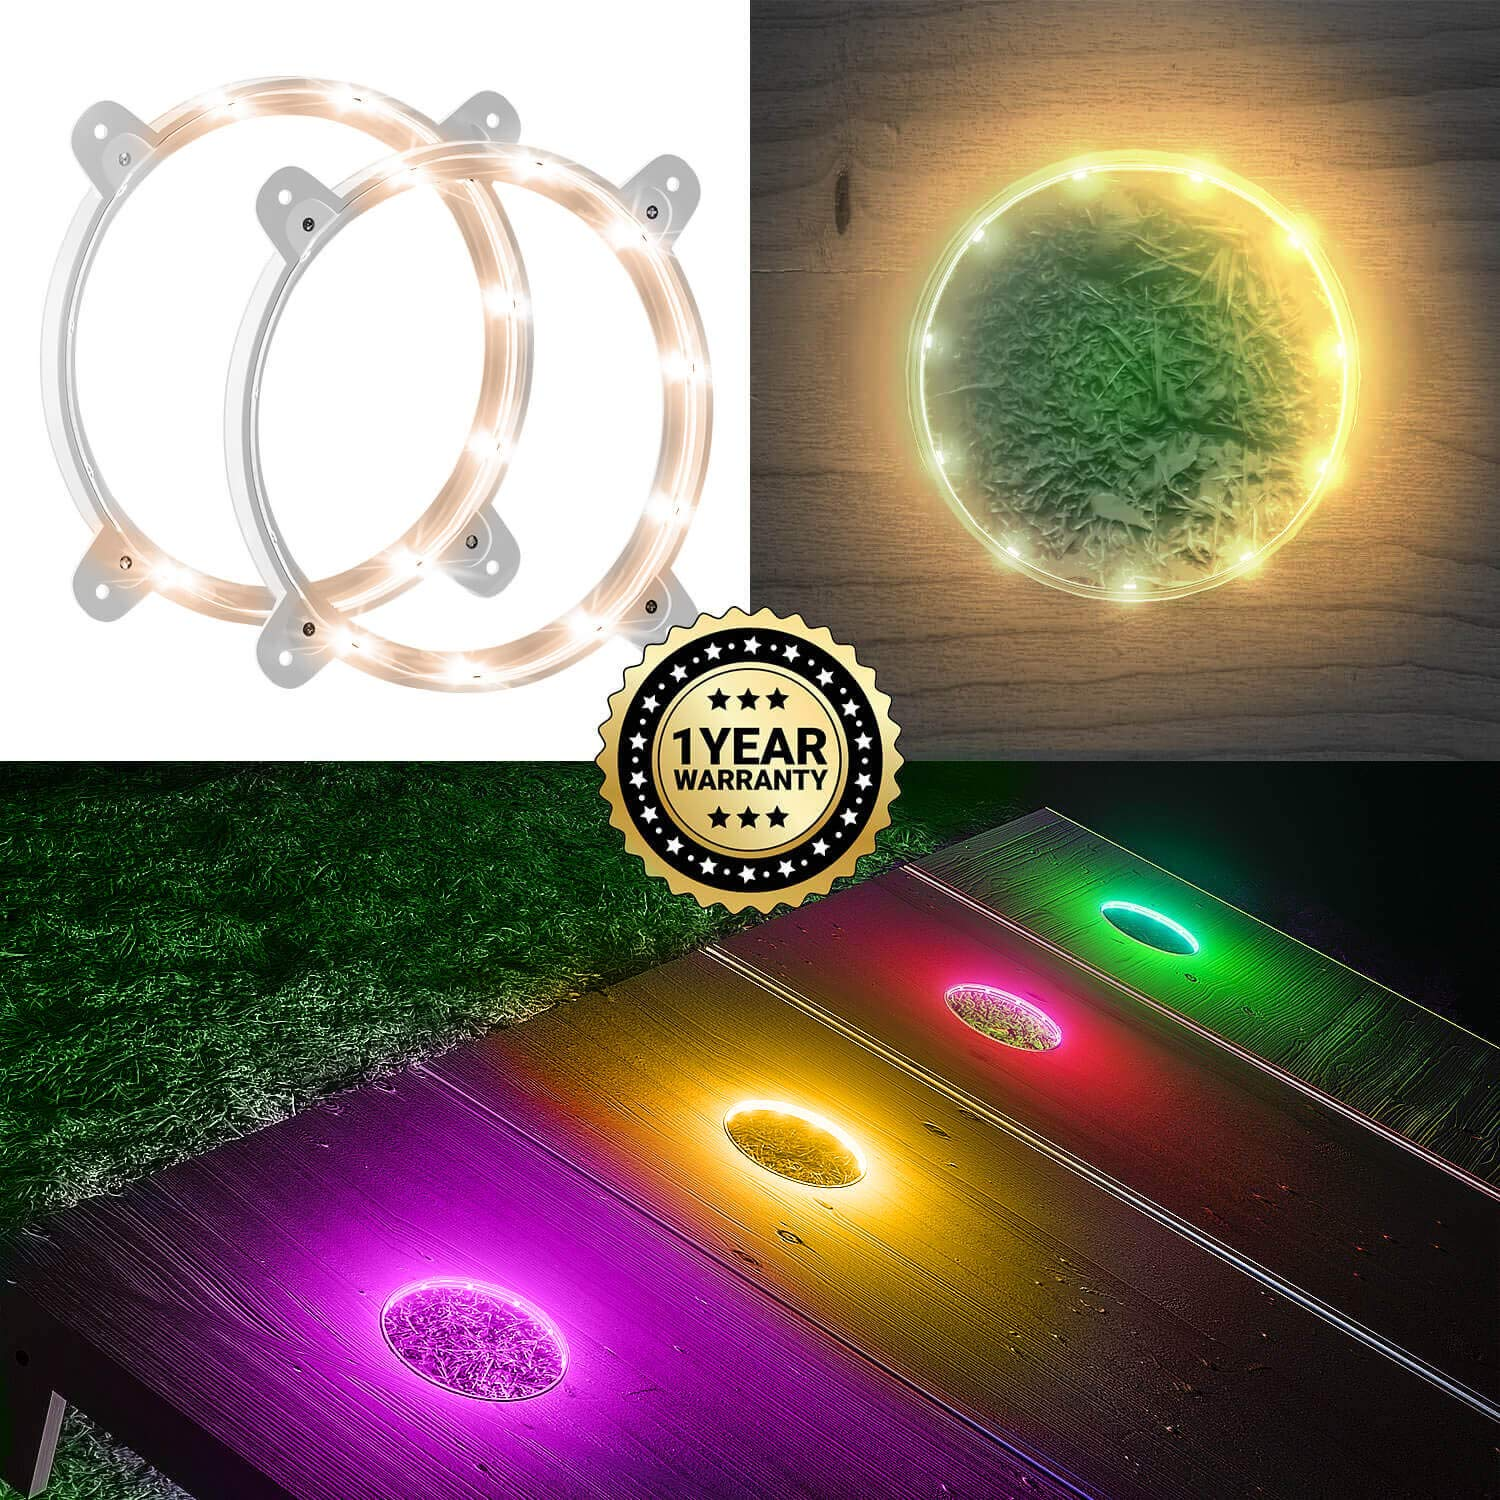 IMMOBIUS Cornhole LED Board Lights so You Can Play at Night! (Set of 2) -Choose from 4 Colors- 1 Year Replacement Warranty, Sturdy Build, Lasts 100+ Hours on 2 AA Batteries! (Gold)